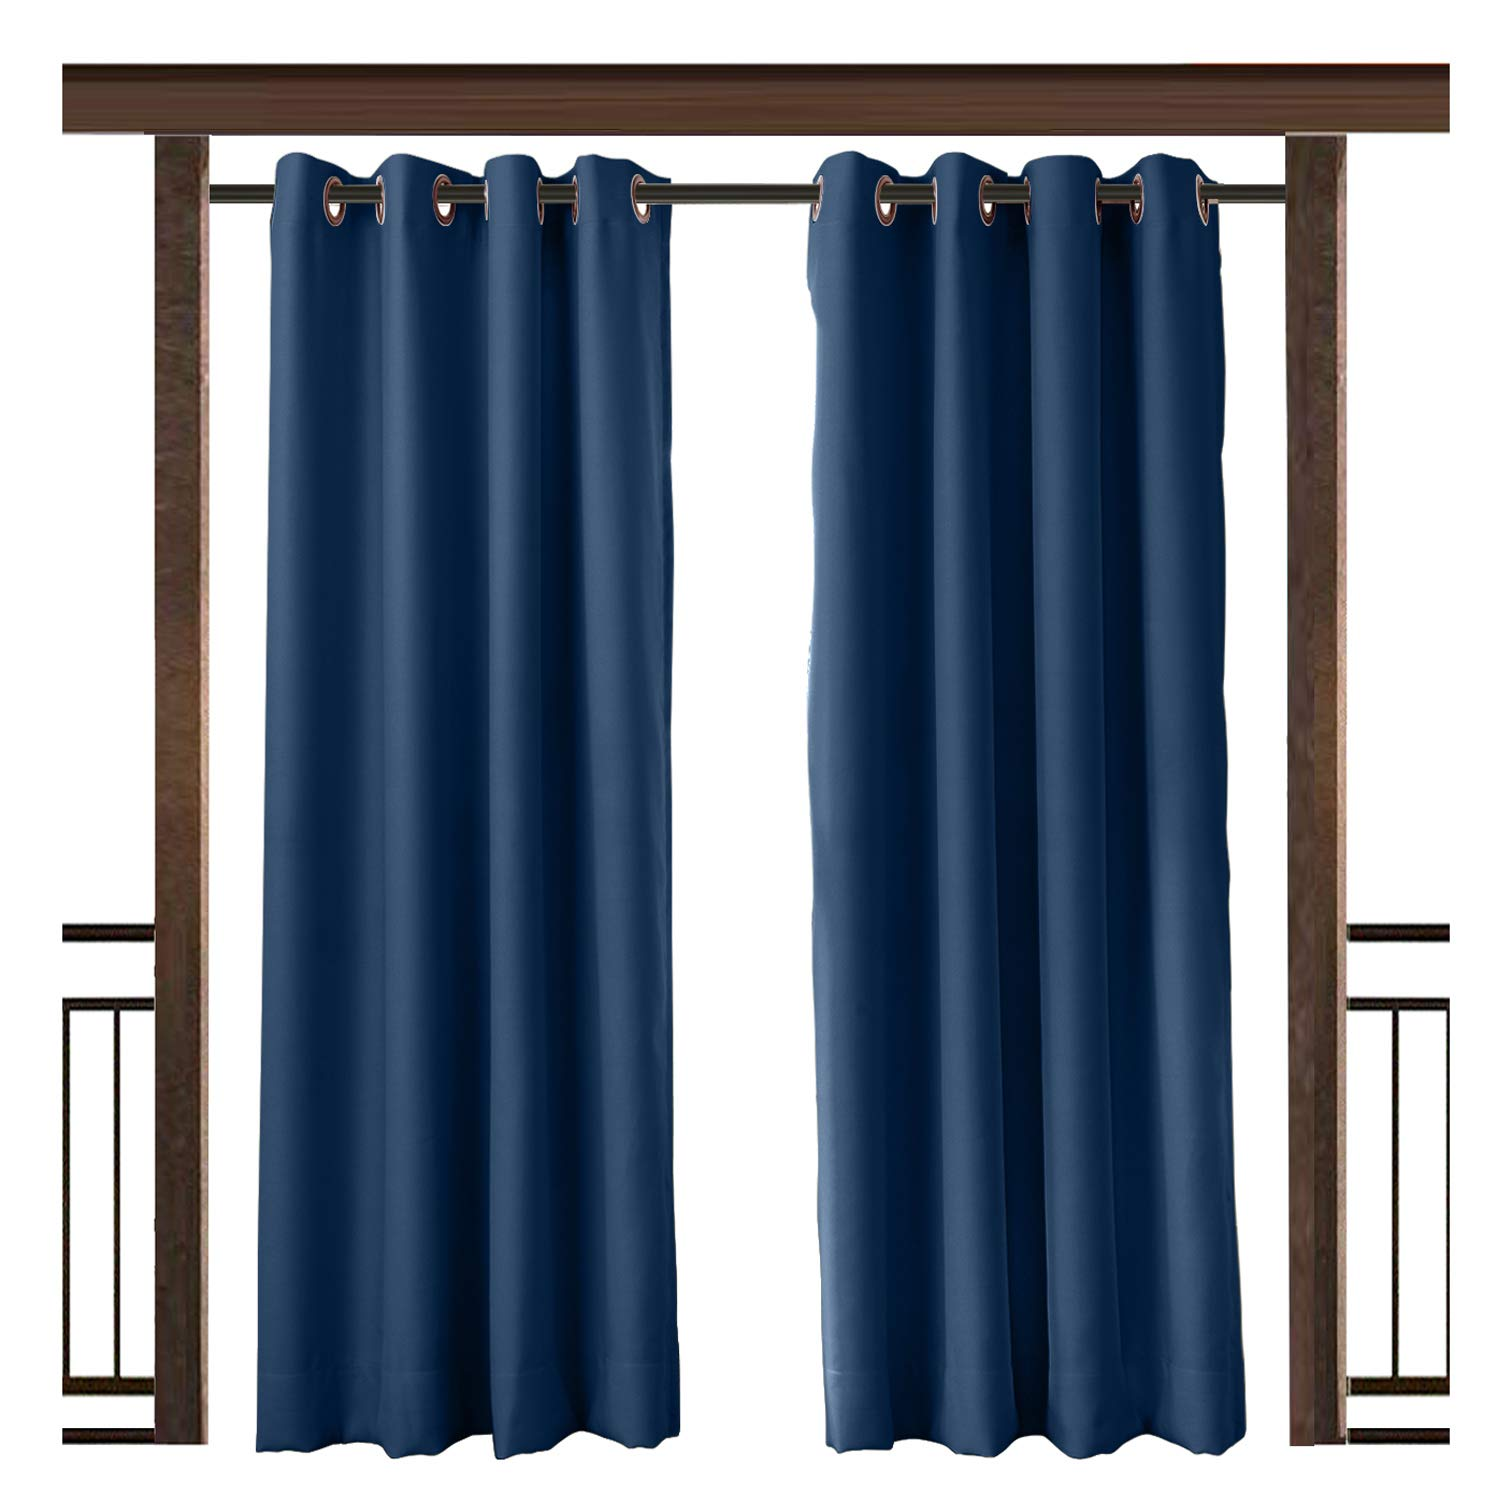 TWOPAGES Outdoor Waterproof Curtain Navy Rustproof Grommet Drape, 150'' W x 96'' L for Front Porch Pergola Cabana Covered Patio Gazebo Dock Beach Home (1 Panel)